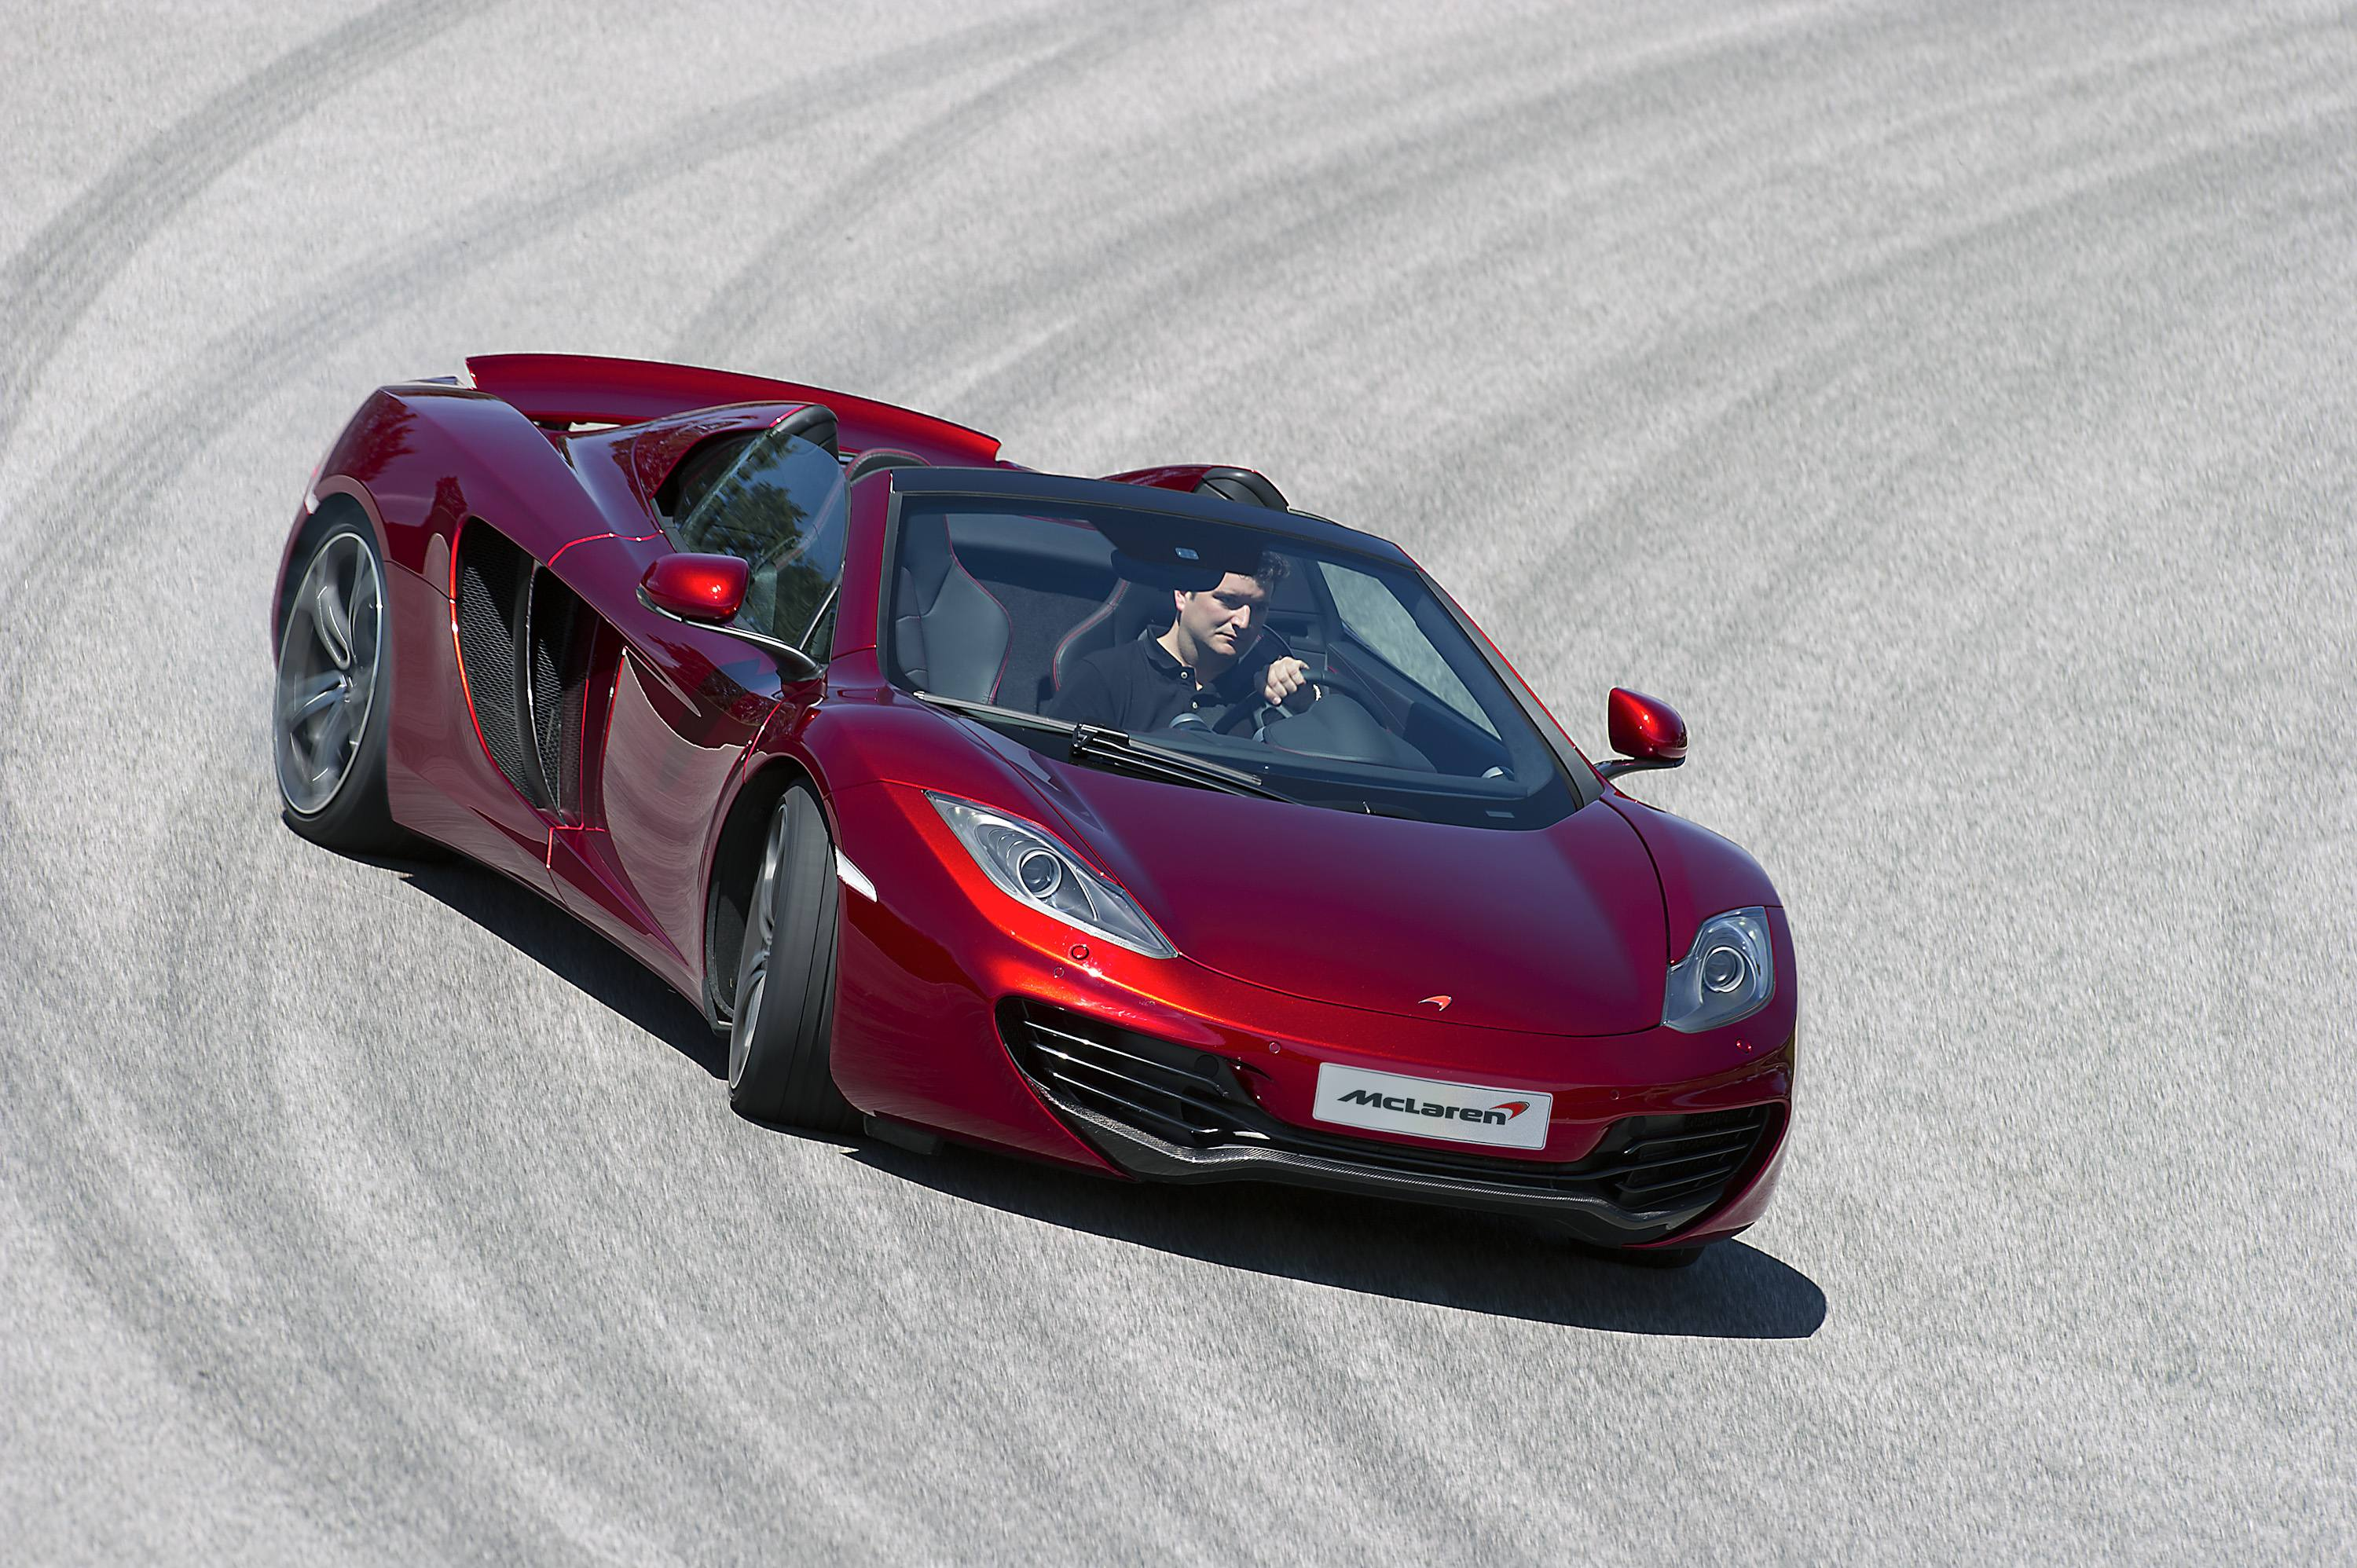 McLaren MP4-12C Spider Sliding